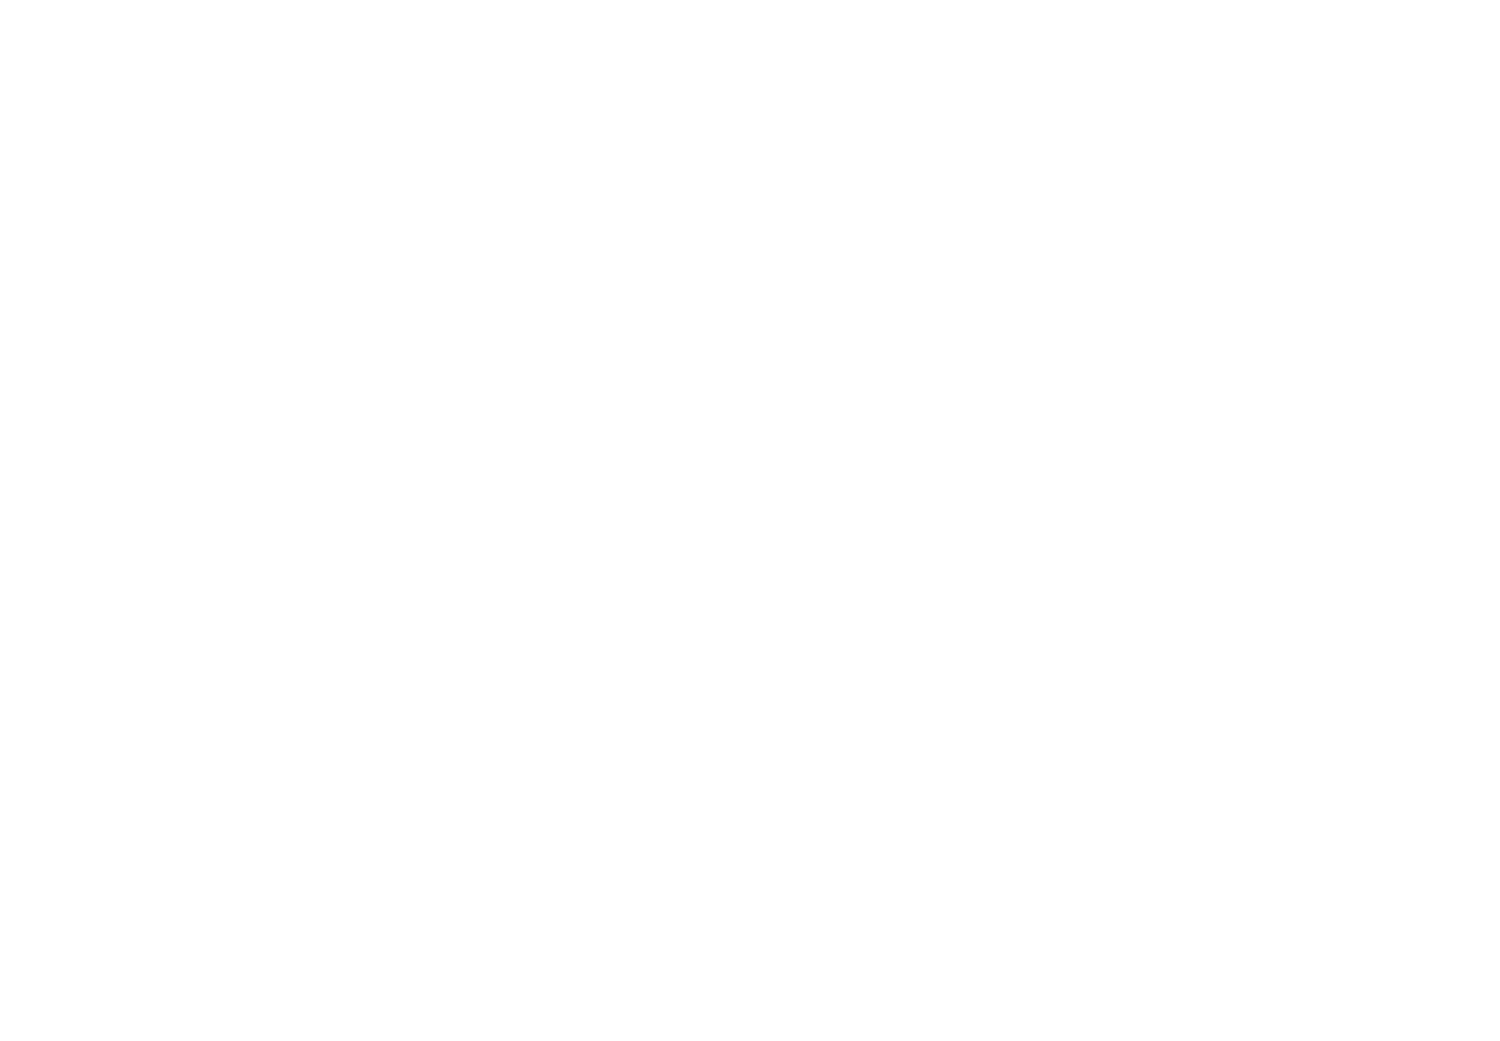 Fitness with Food